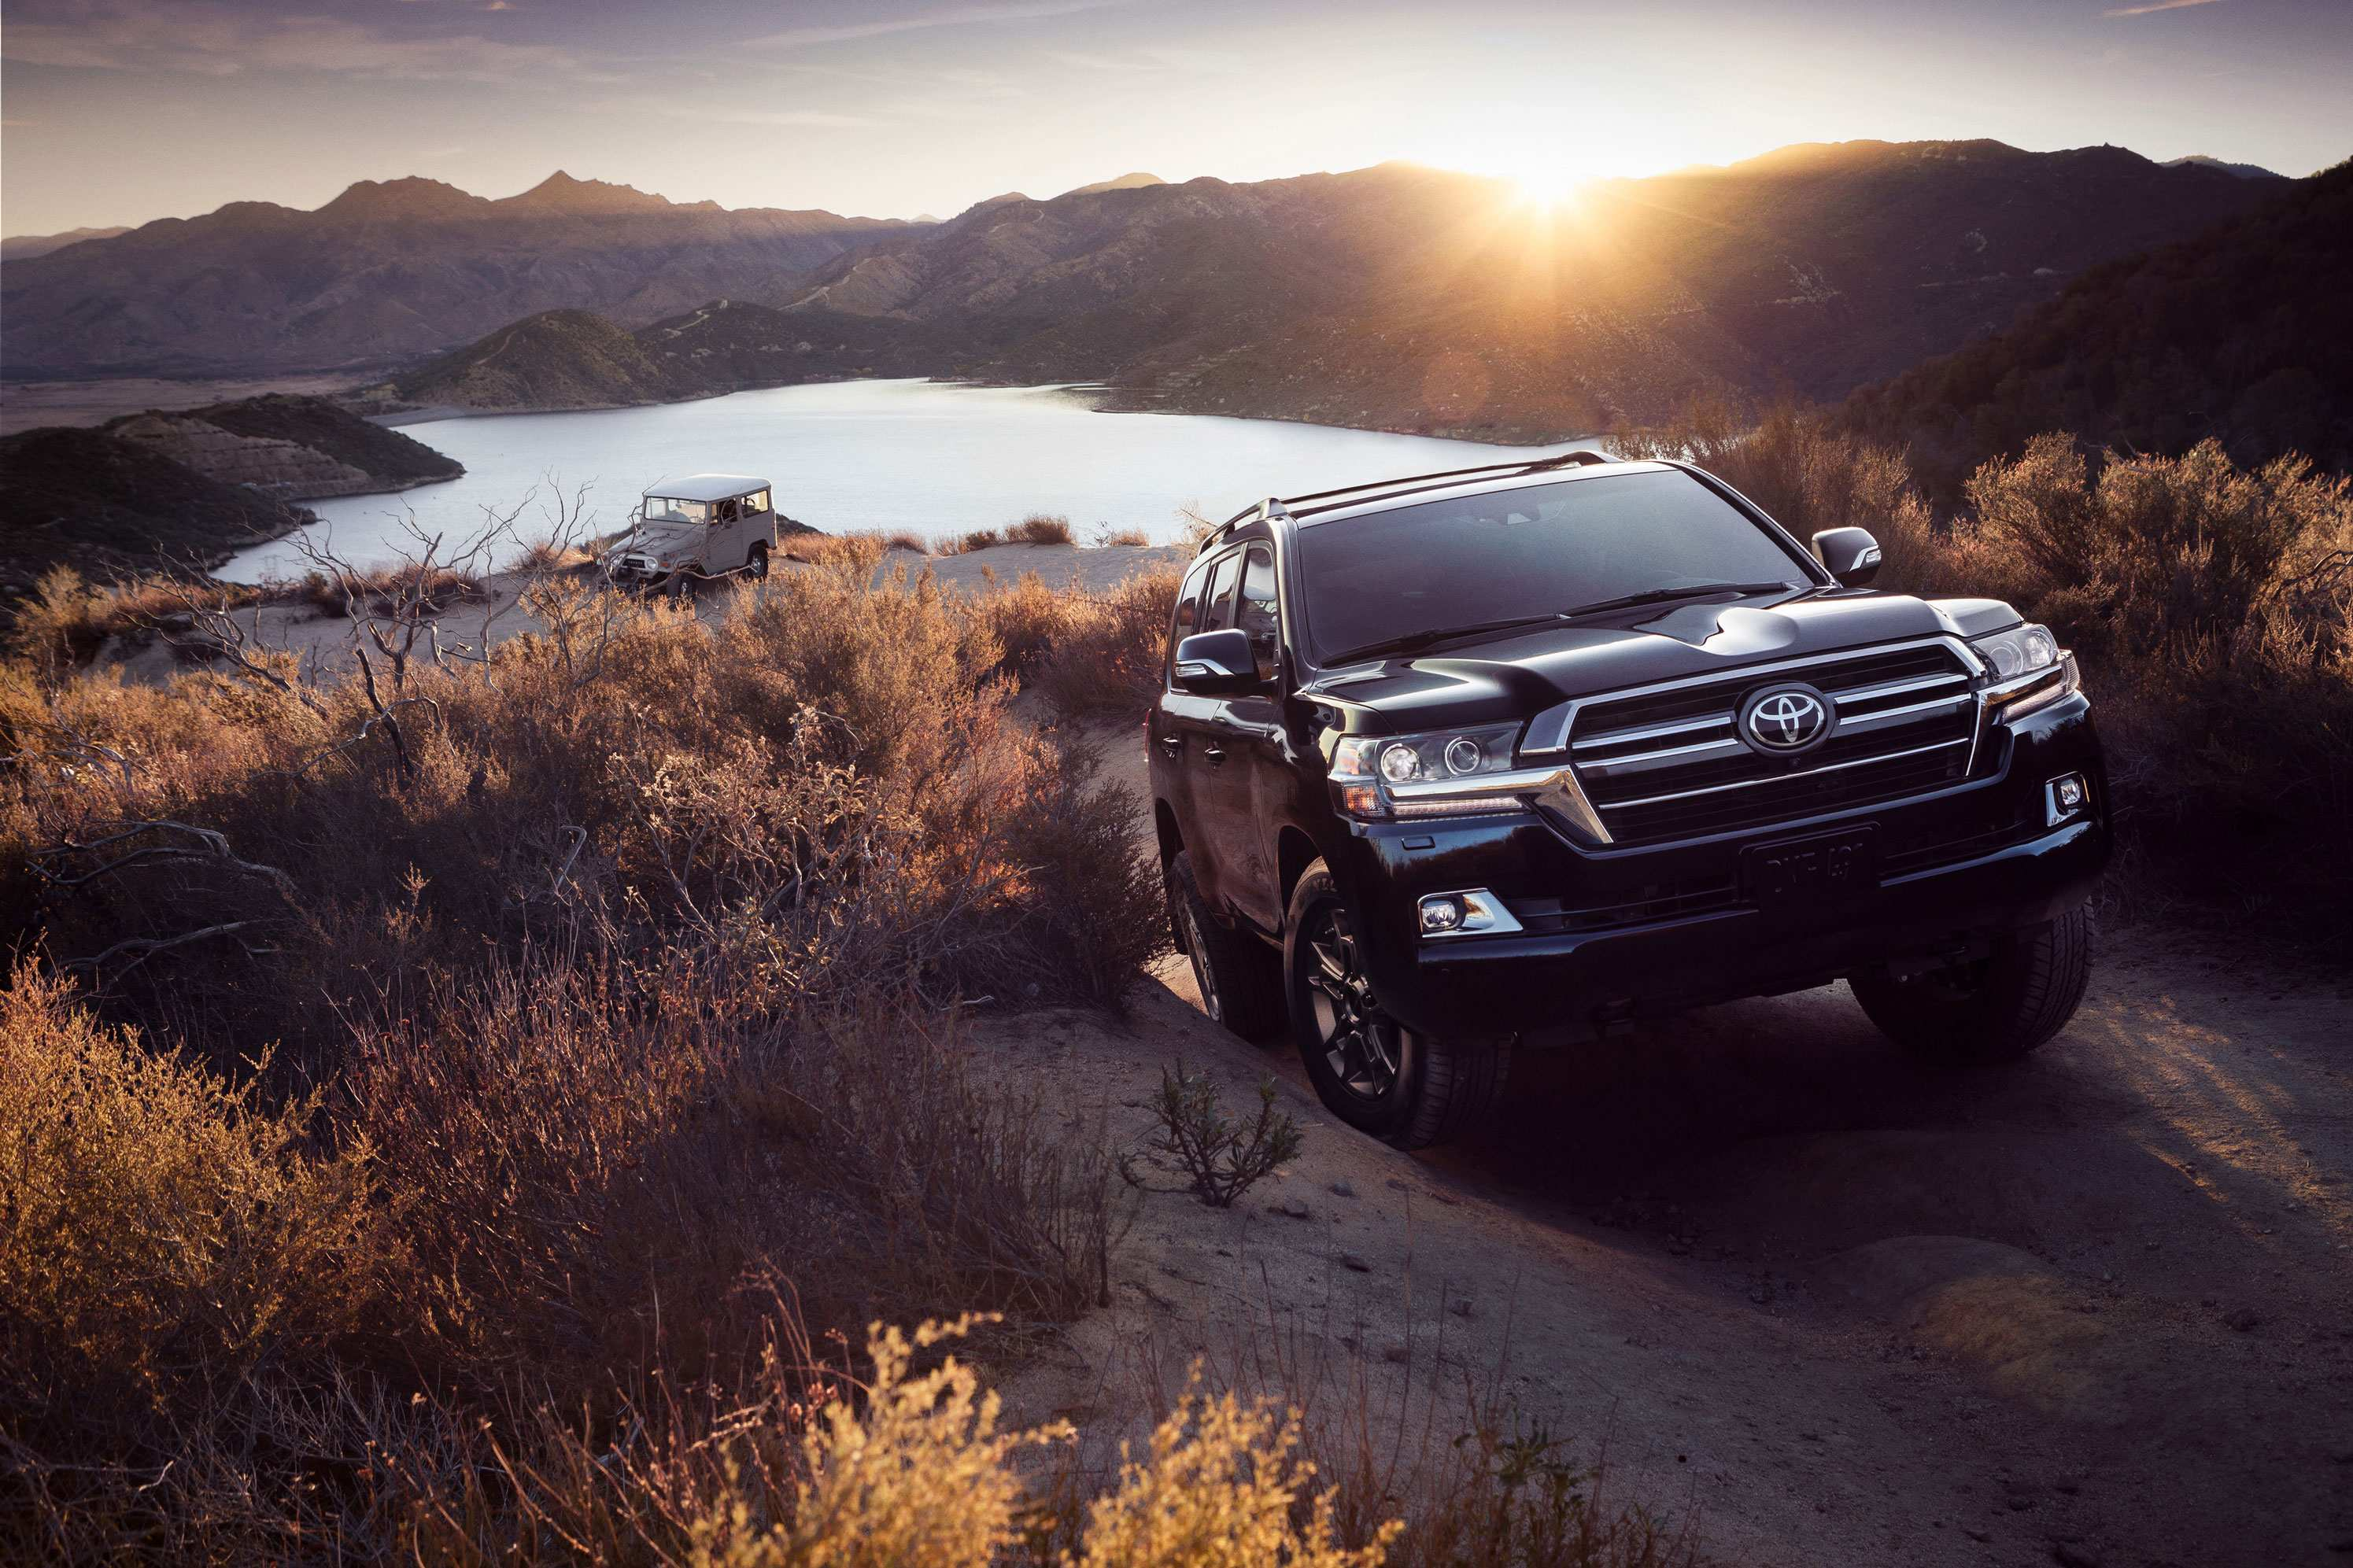 45 Concept of Toyota Land Cruiser 2020 Review with Toyota Land Cruiser 2020